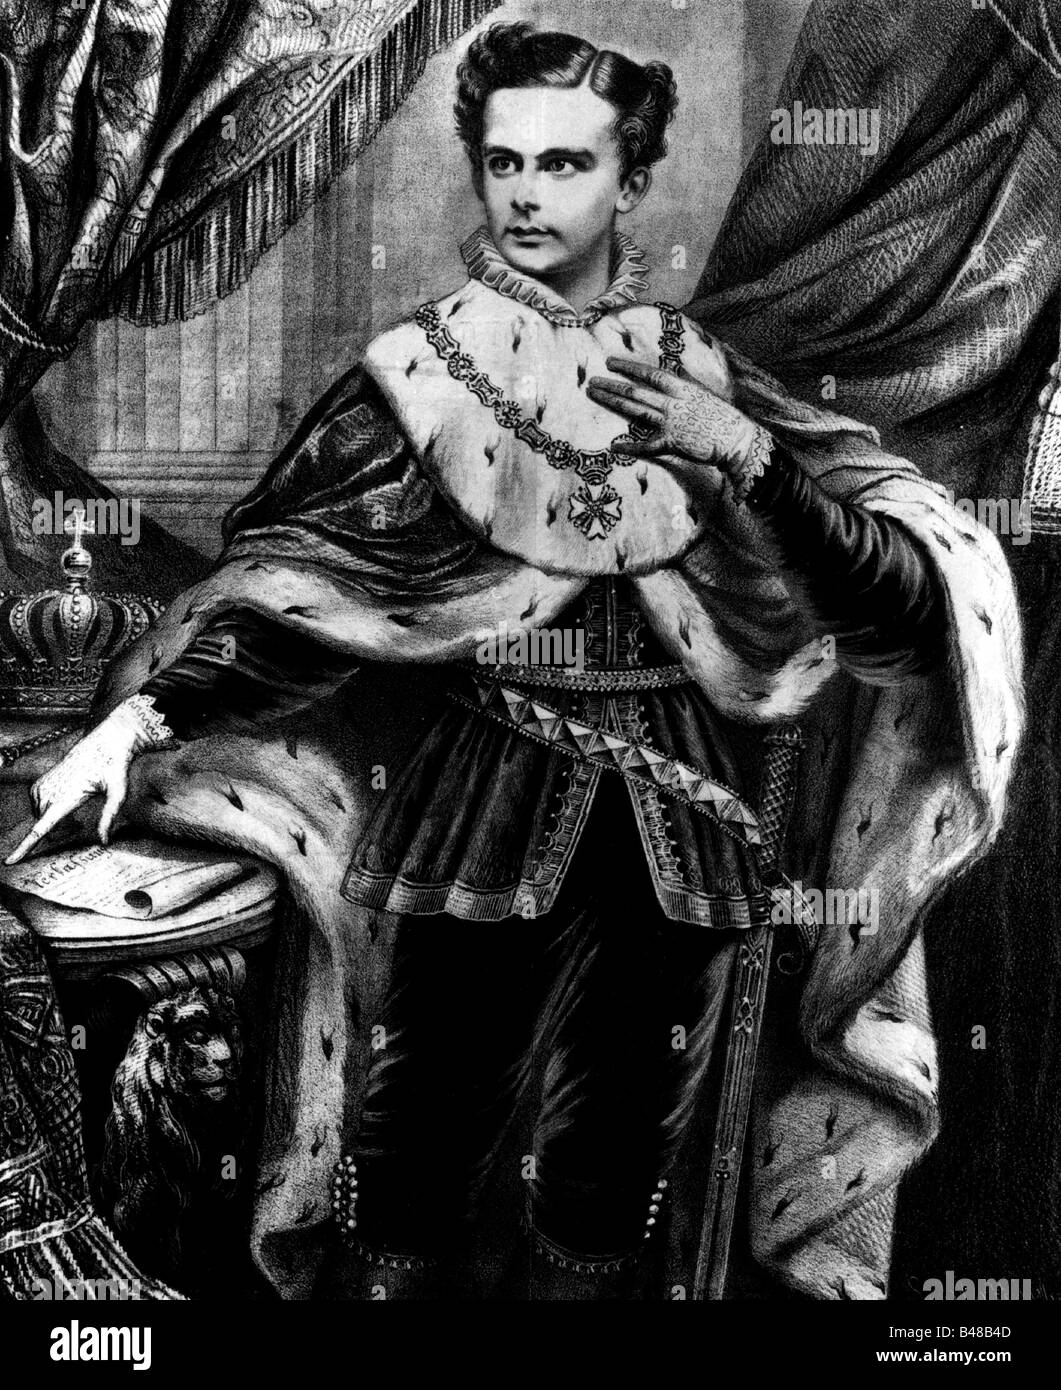 Ludwig II, 25.8.1845 - 13.6.1886, King of Bavaria 10.3.1864 - 13.6.1886, half length, capped and gowned, lithograph, - Stock Image